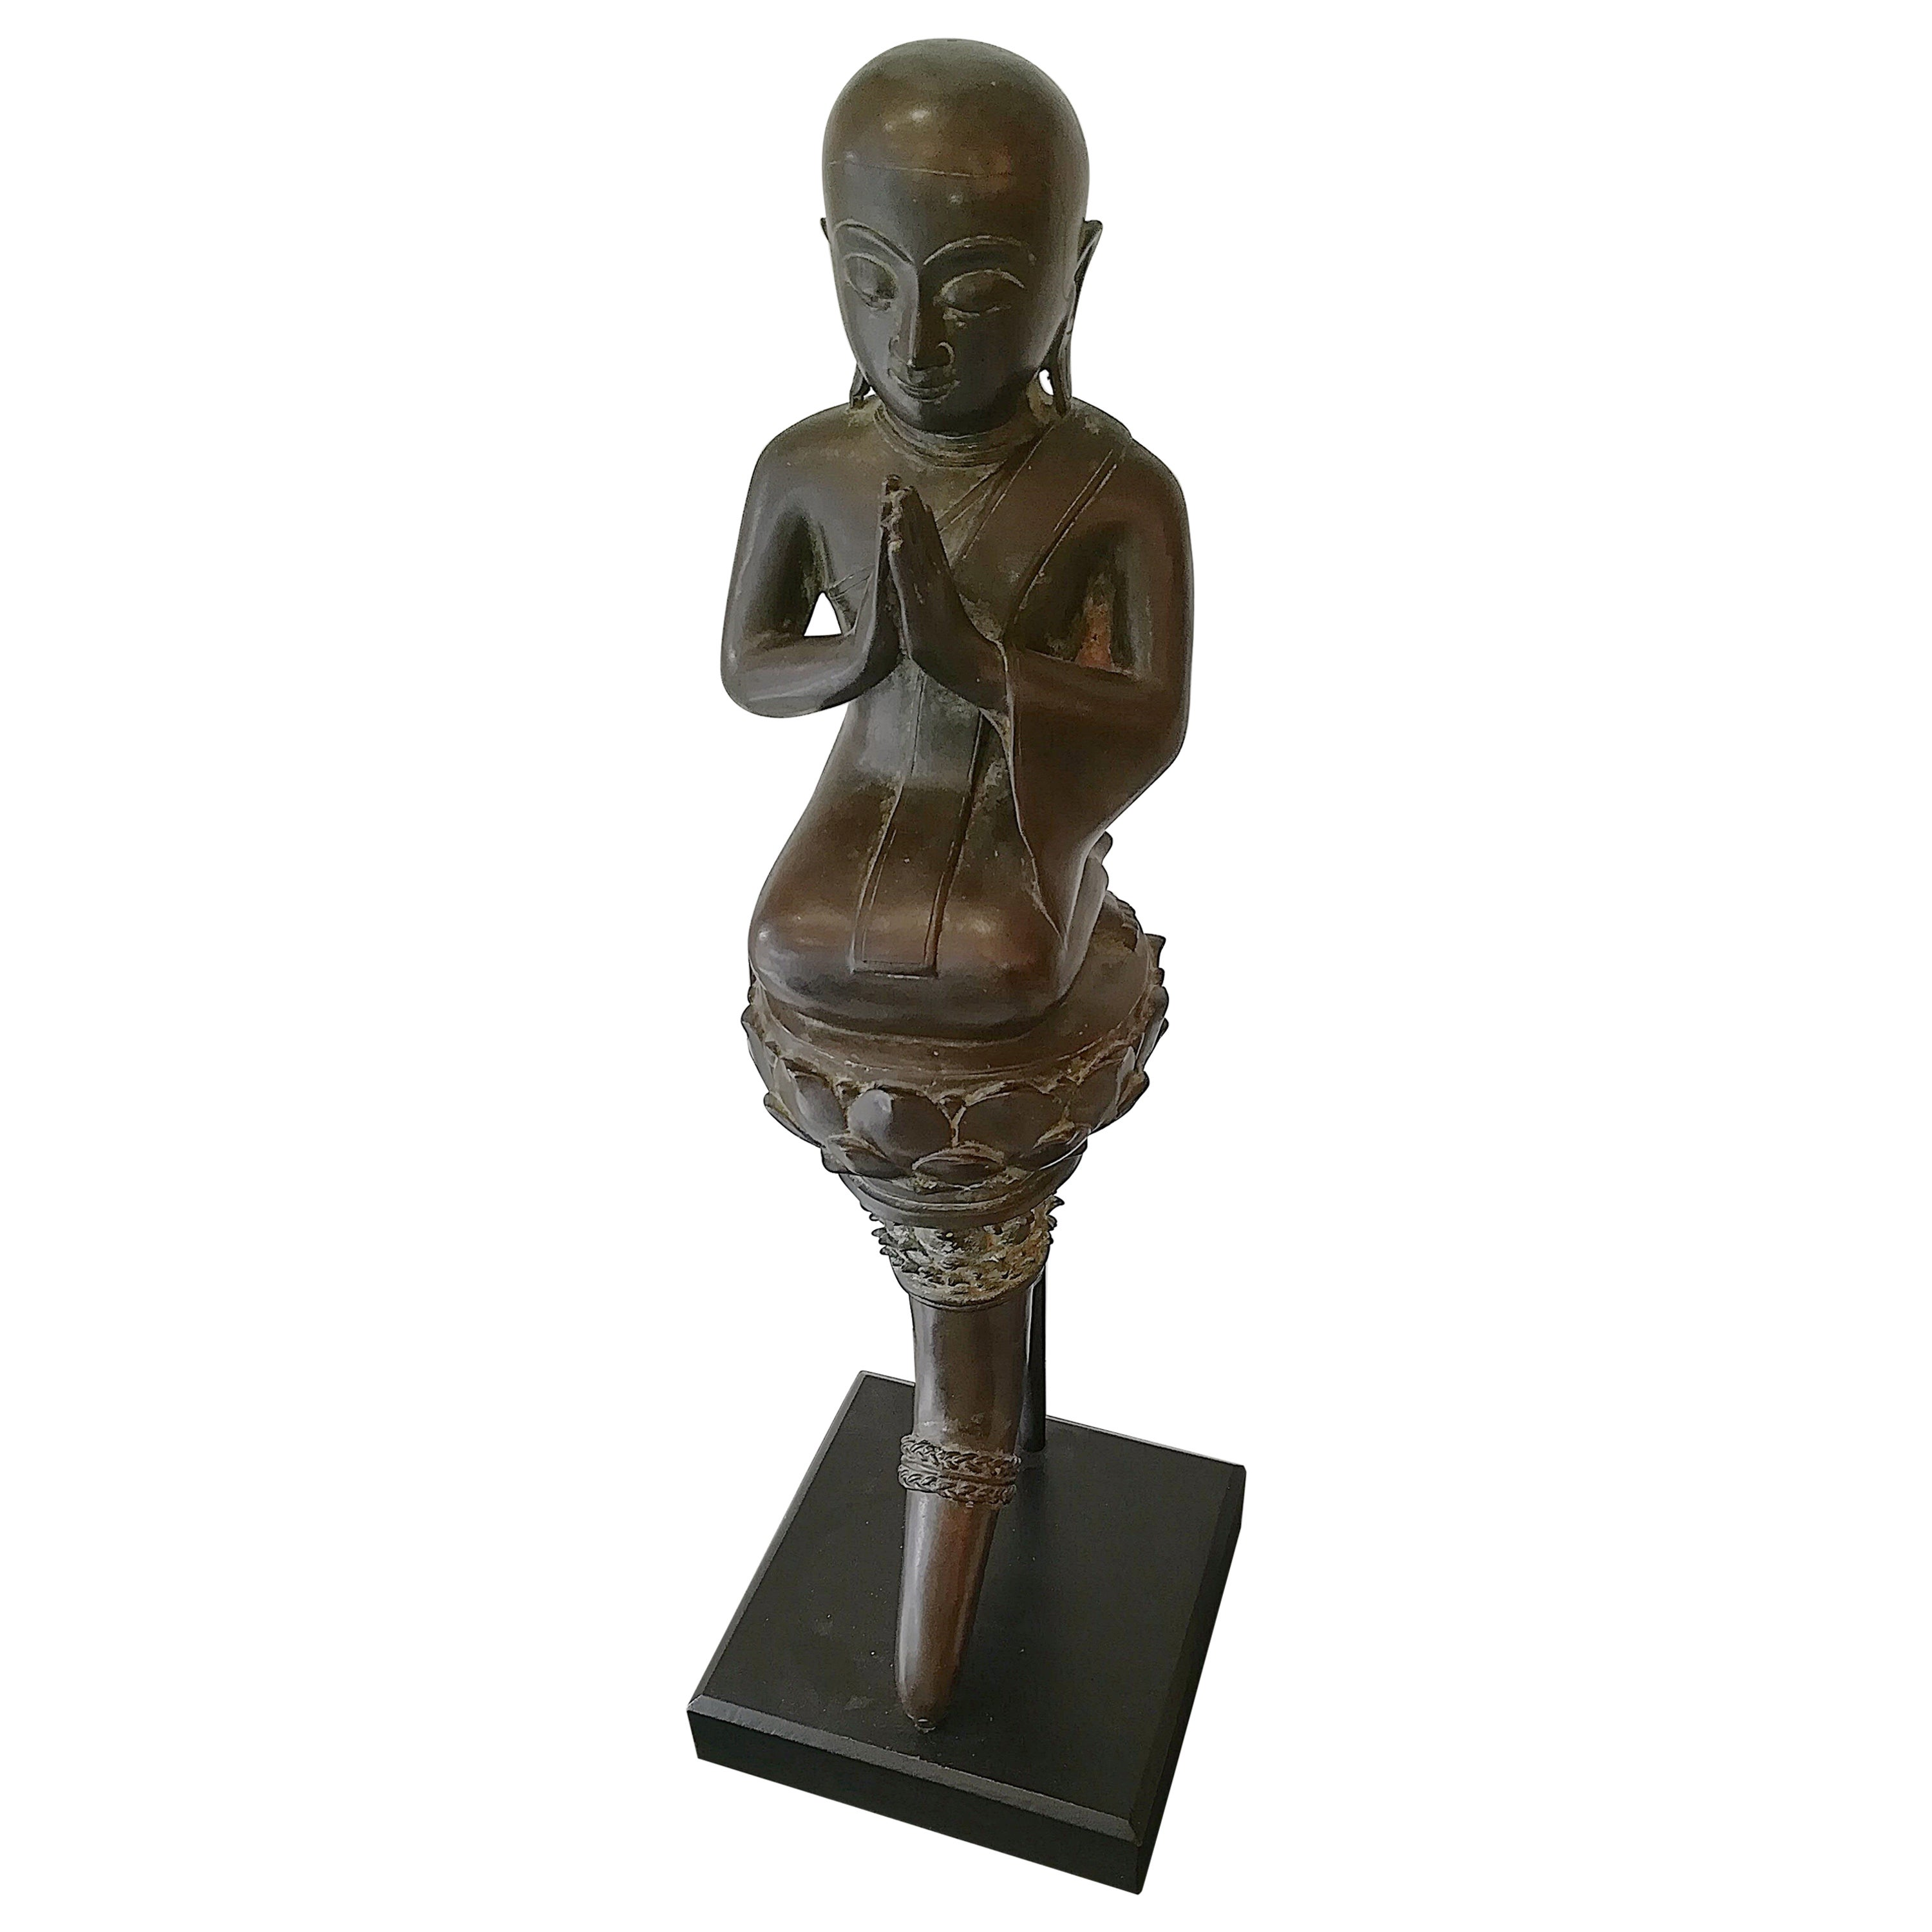 Burmese Monk in Bronze, 18th Century